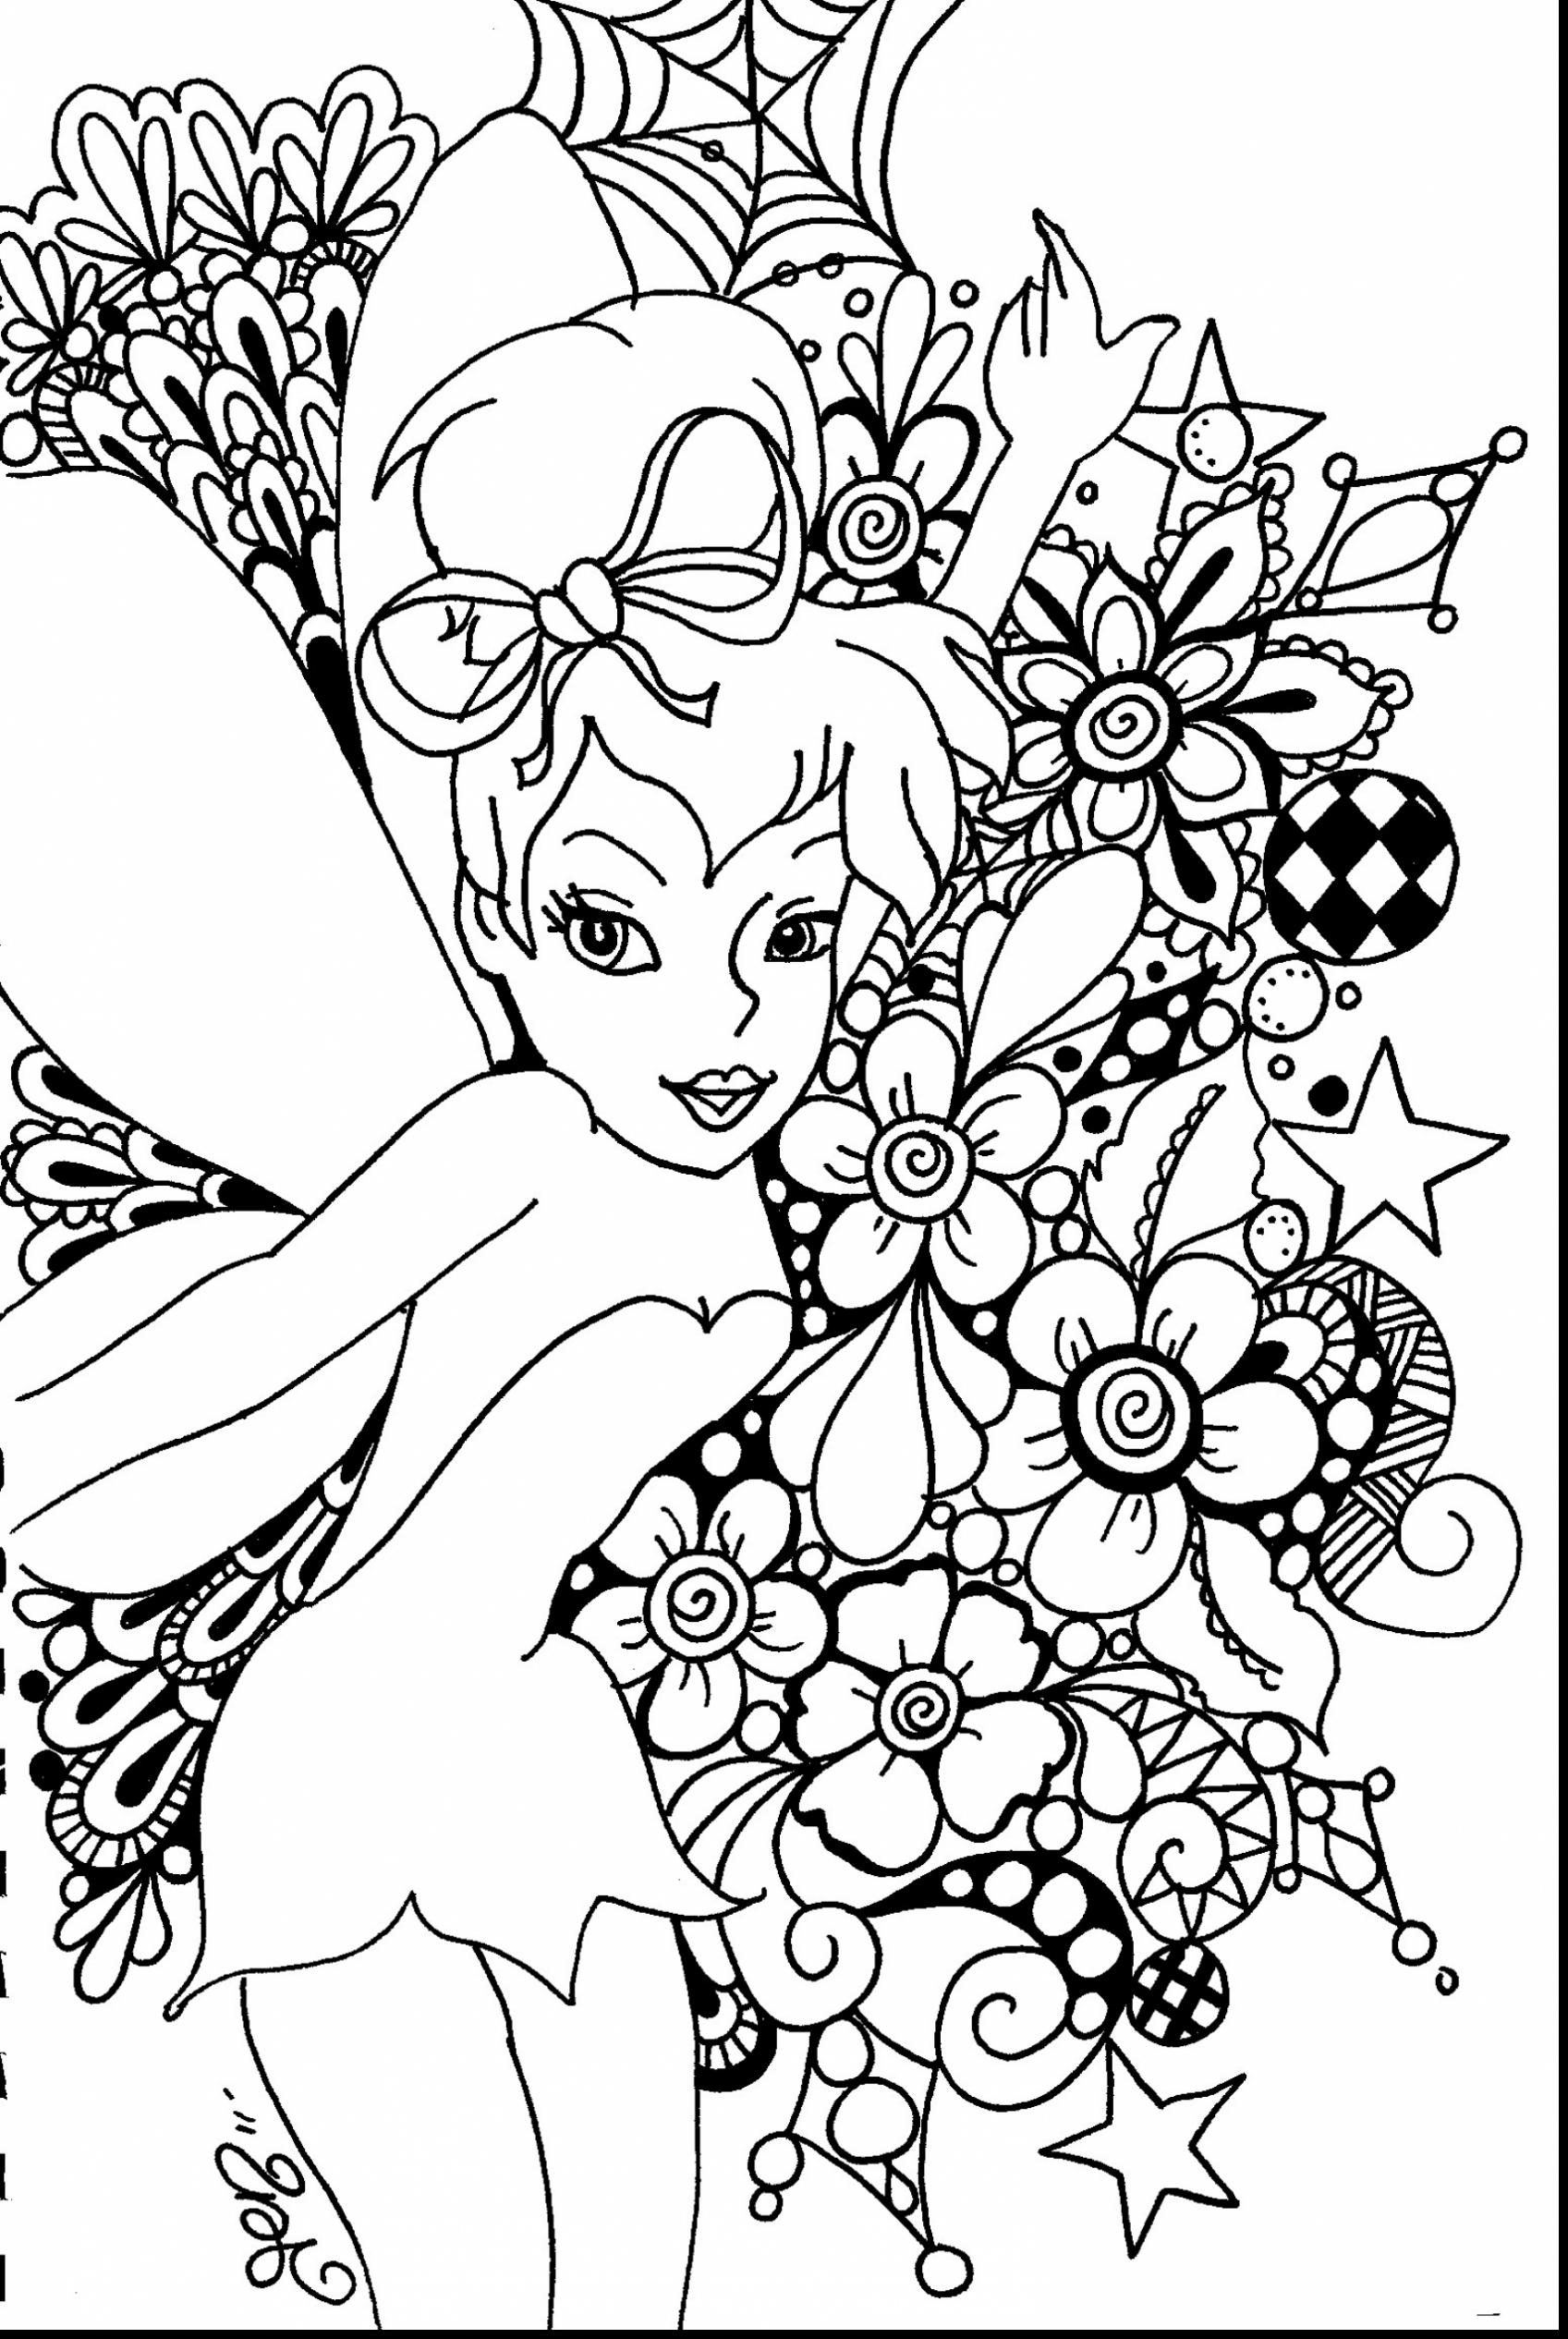 1697x2531 People Coloring Pages With Wallpaper Hd Desktop Mayapurjacouture